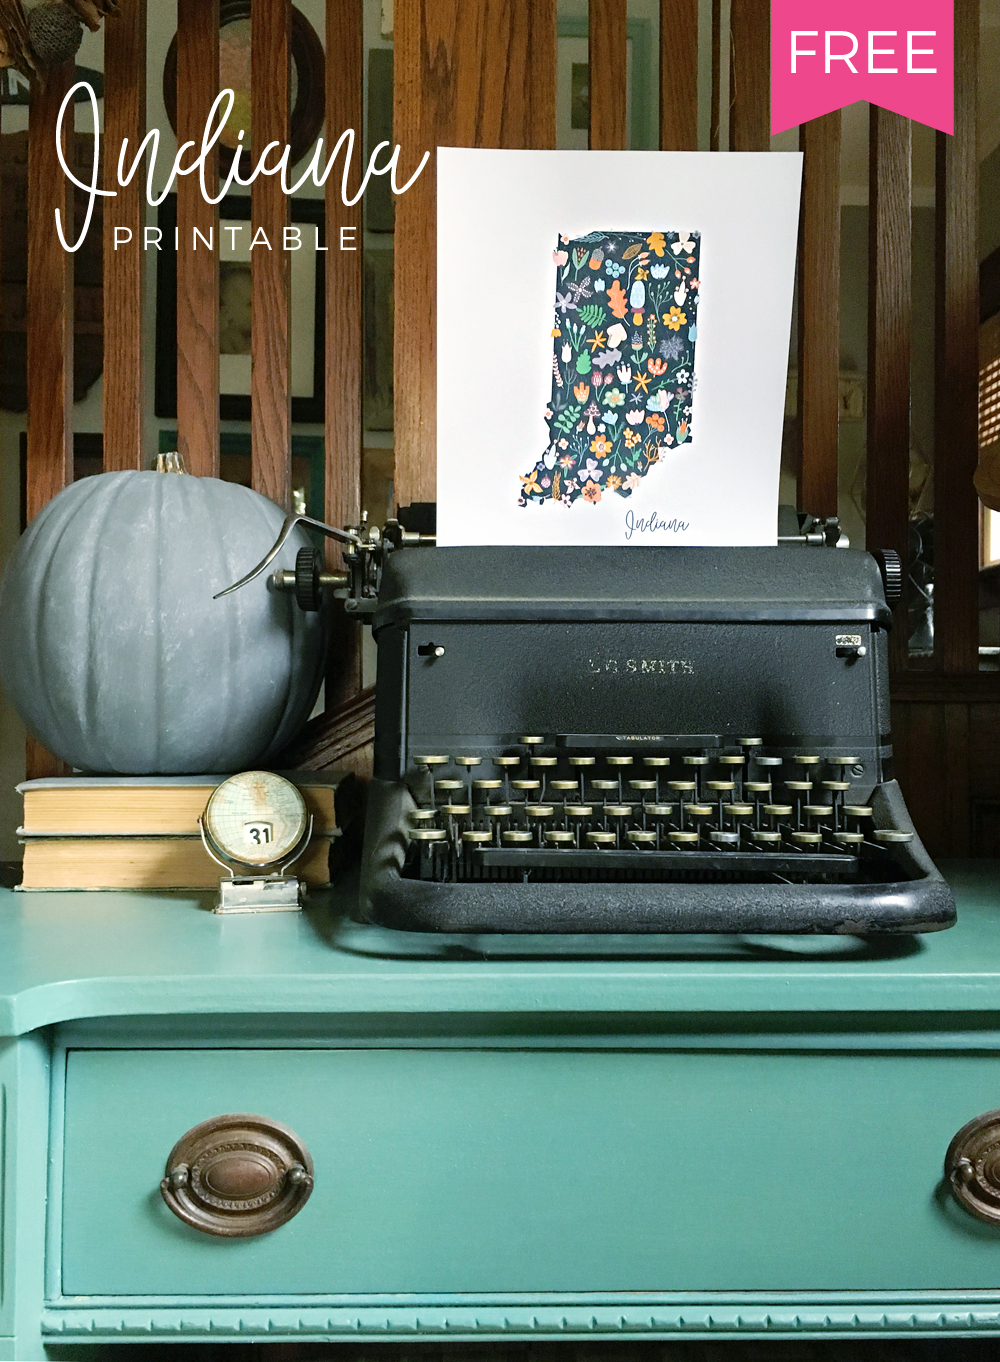 Free Indiana Printable for Fall Home Decor